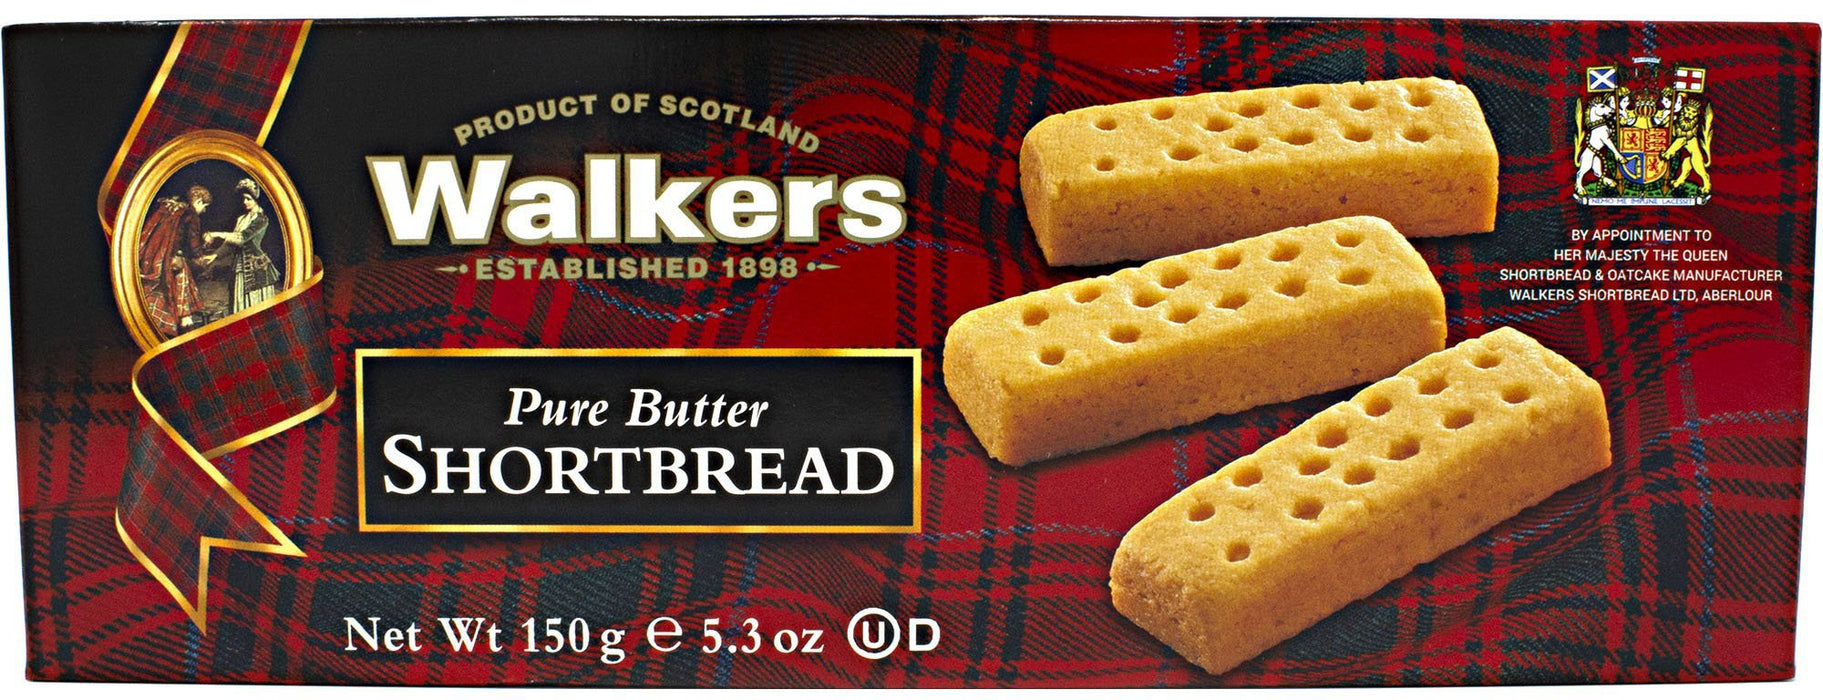 Walkers Shortbread Short